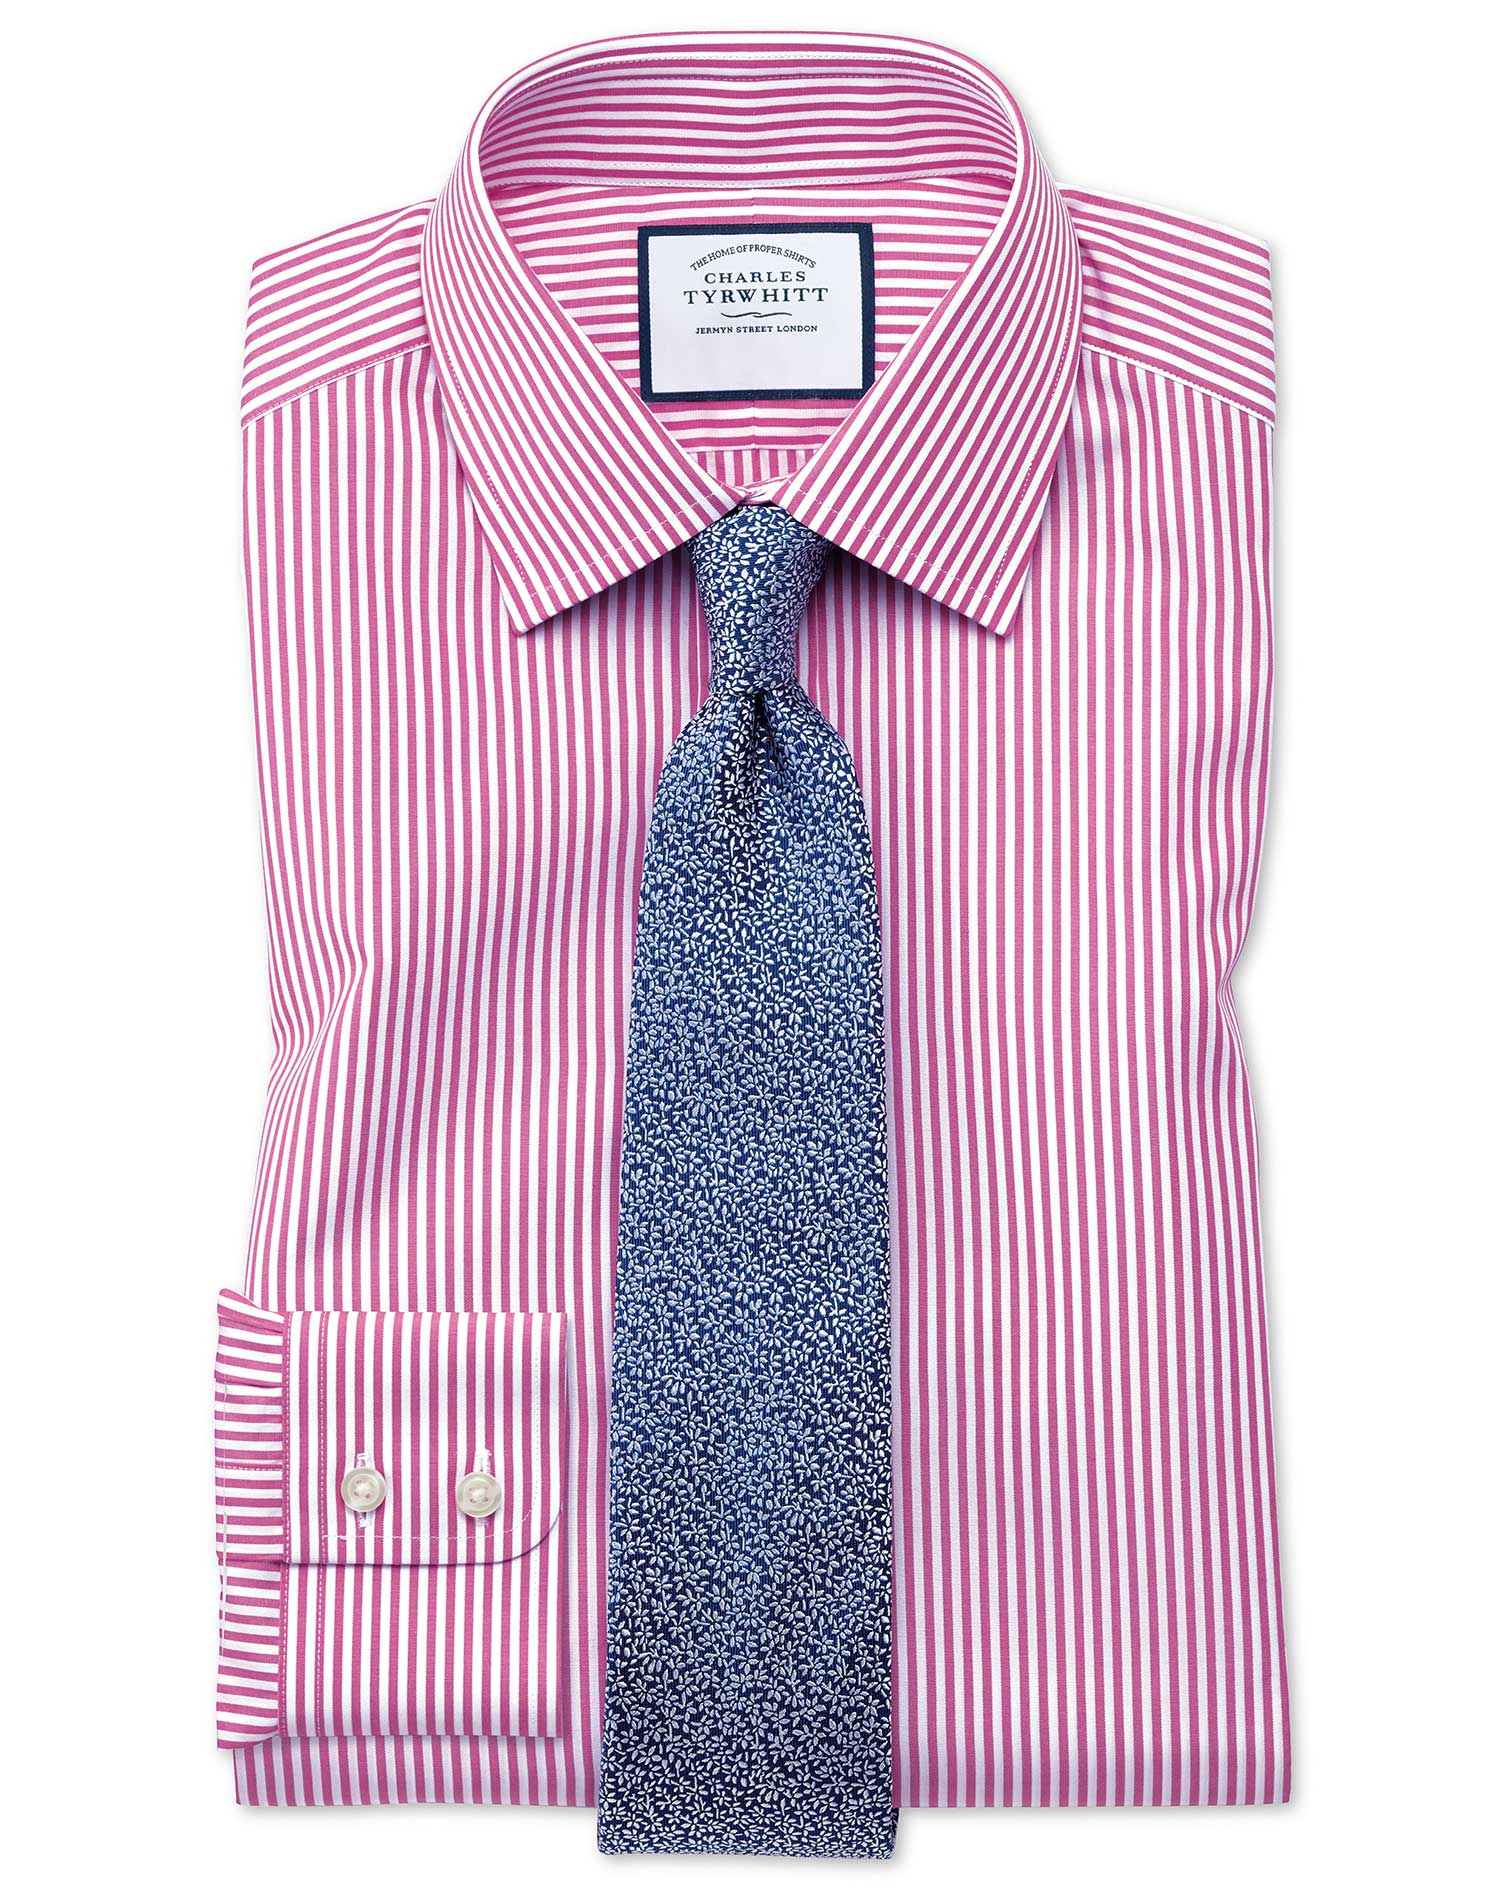 Slim Fit Bengal Stripe Pink Cotton Formal Shirt Single Cuff Size 16.5/33 by Charles Tyrwhitt